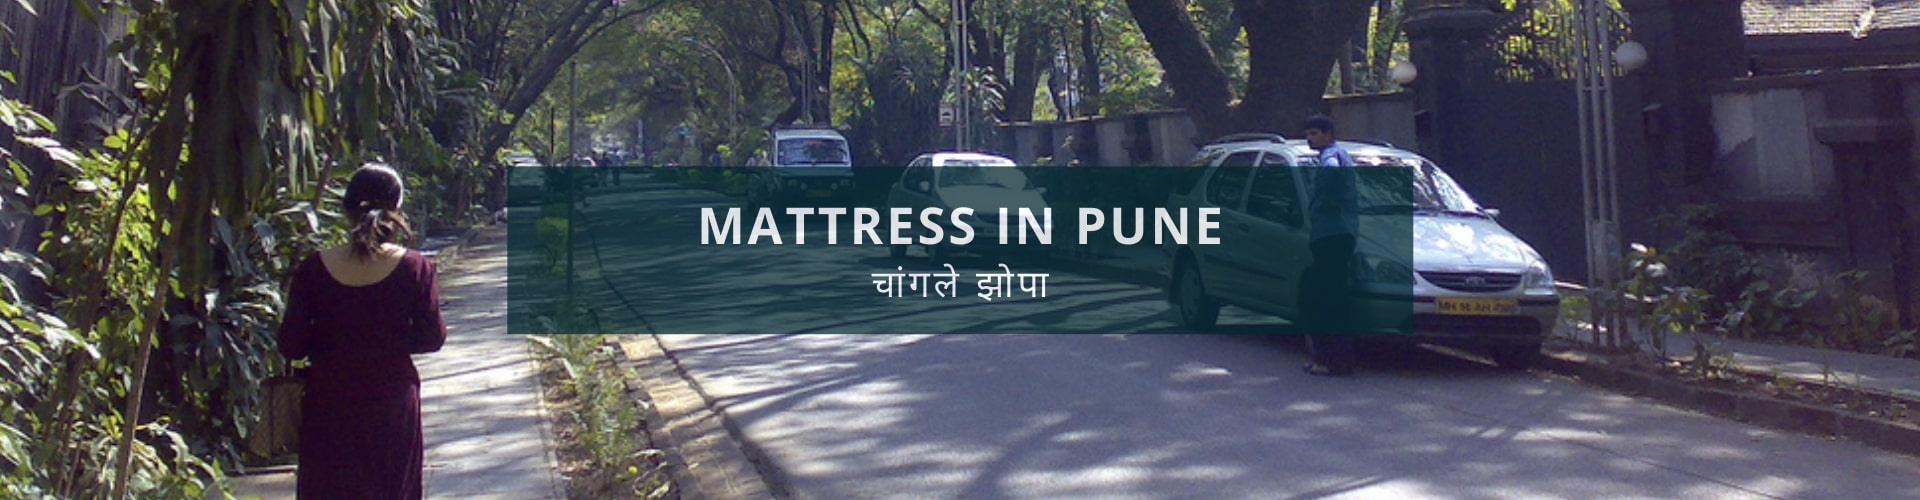 Buy mattress online in pune